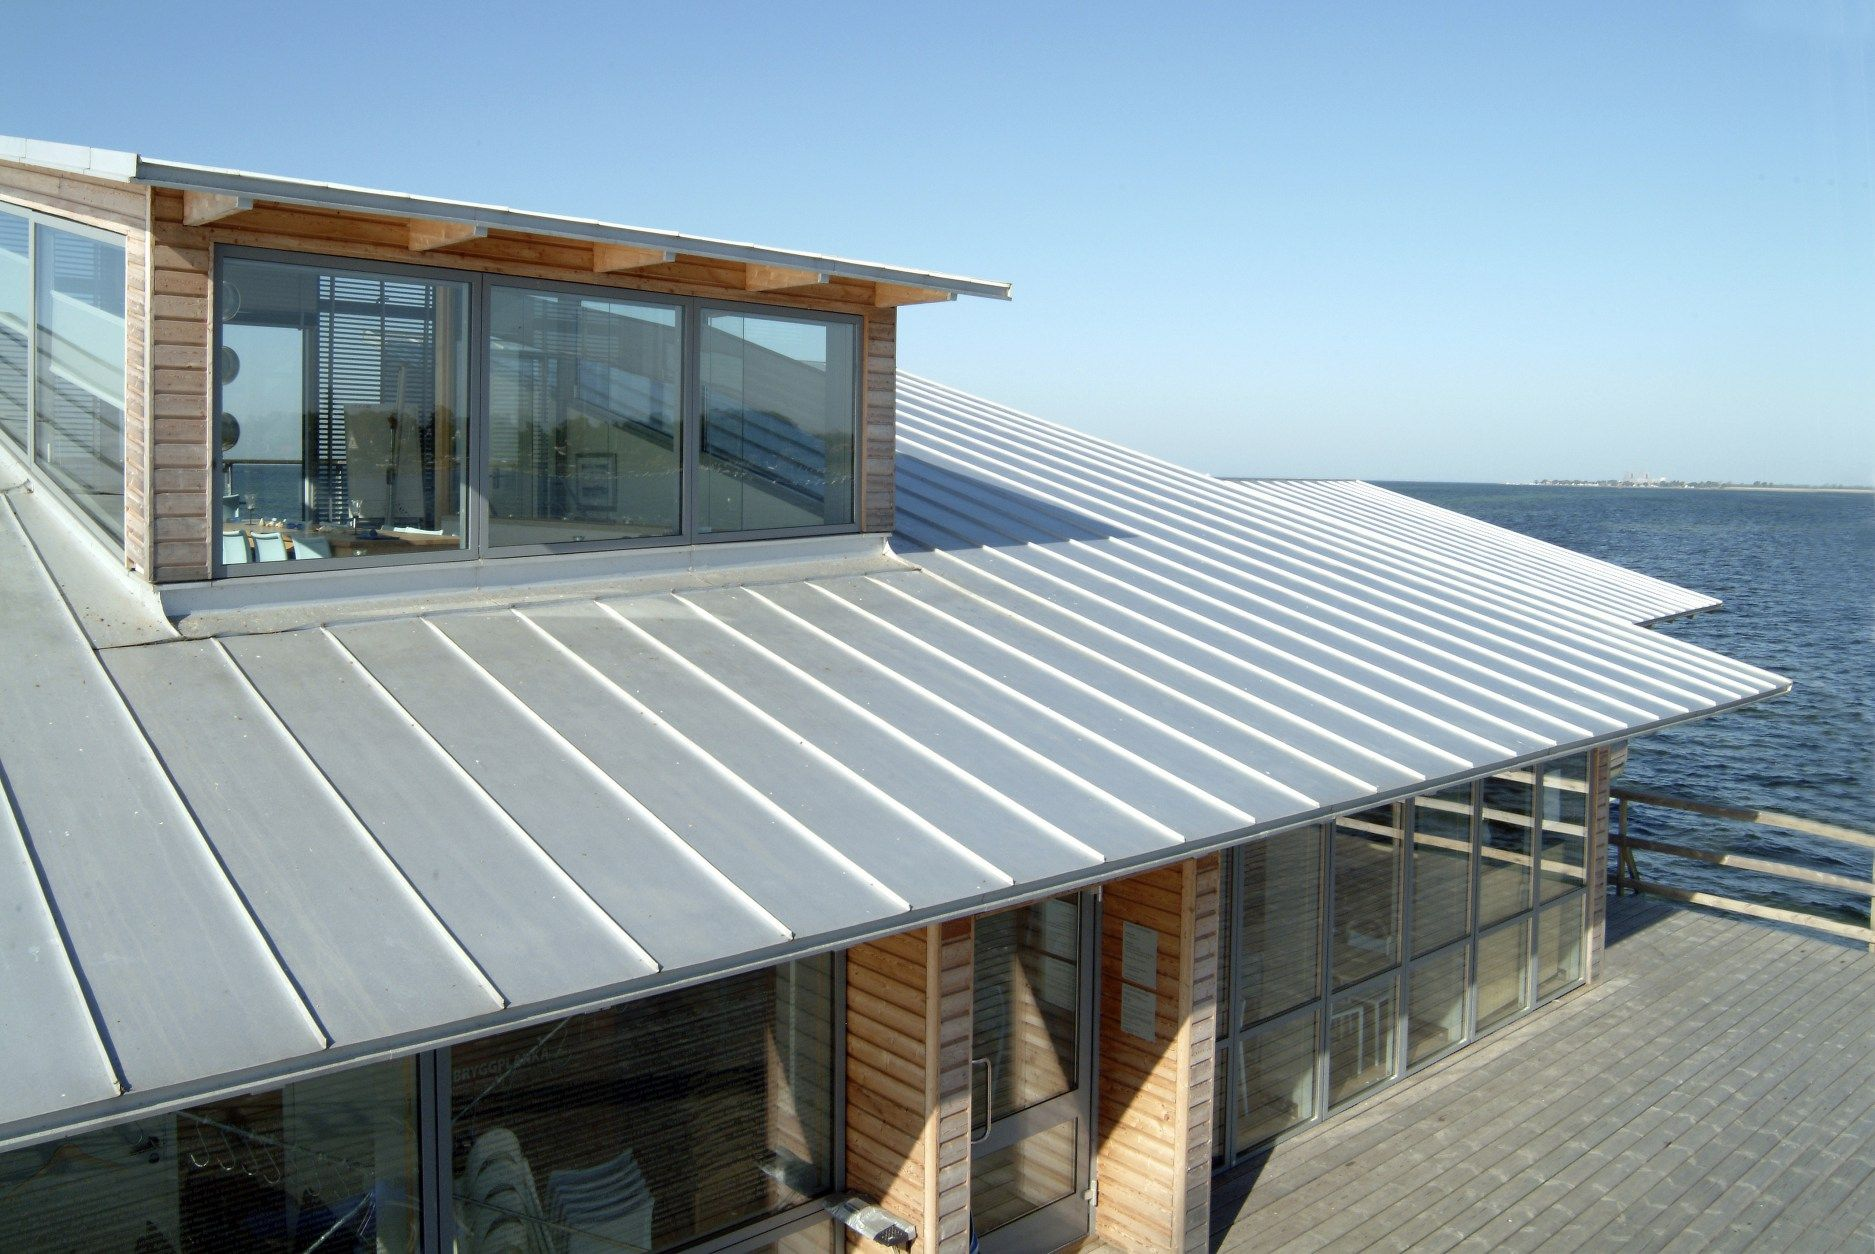 Best Roofing Materials For Homes 2020 Material Costs Plus Pros Cons Zinc Roof Metal Roof Colors Metal Roof Cost